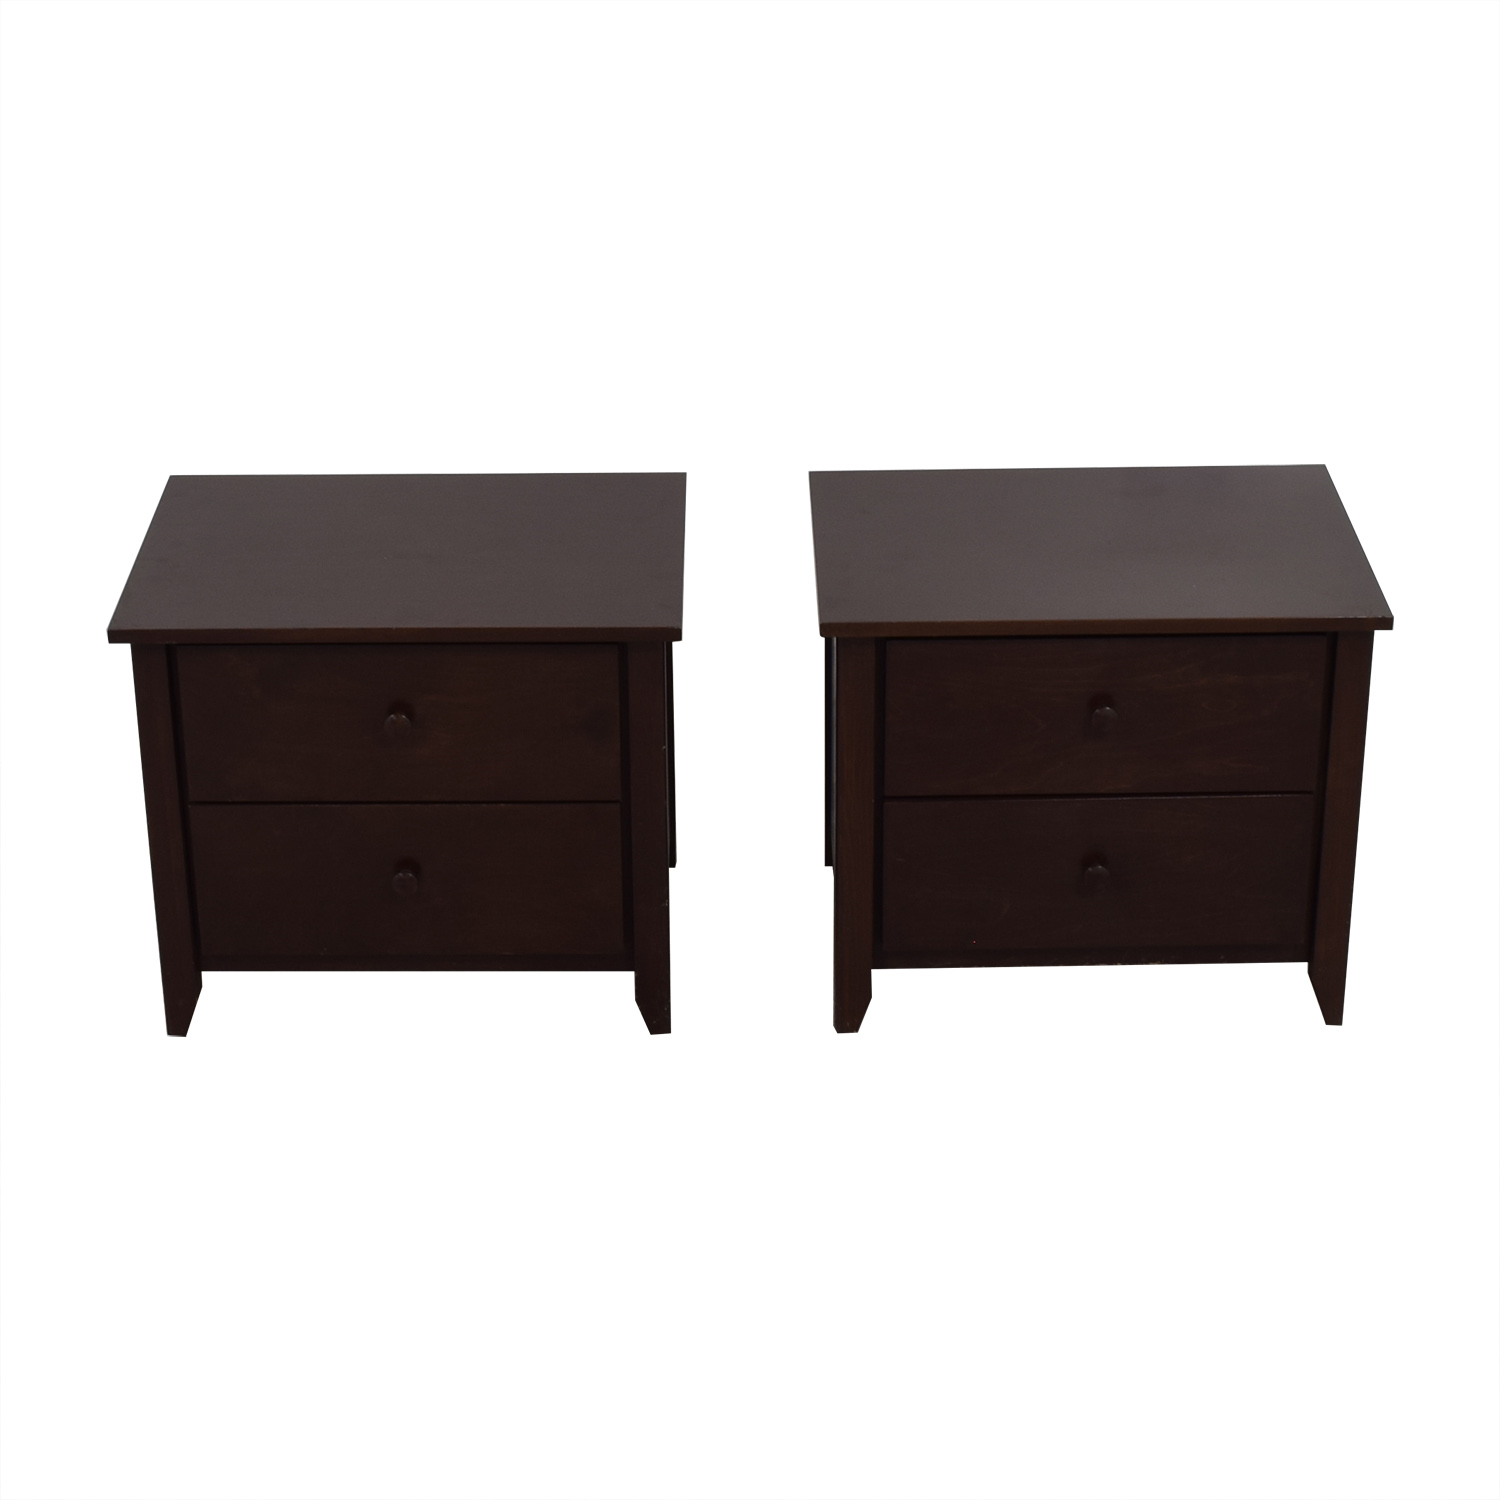 Gotham Cabinet Craft Wood Two-Drawer Night Stands / End Tables